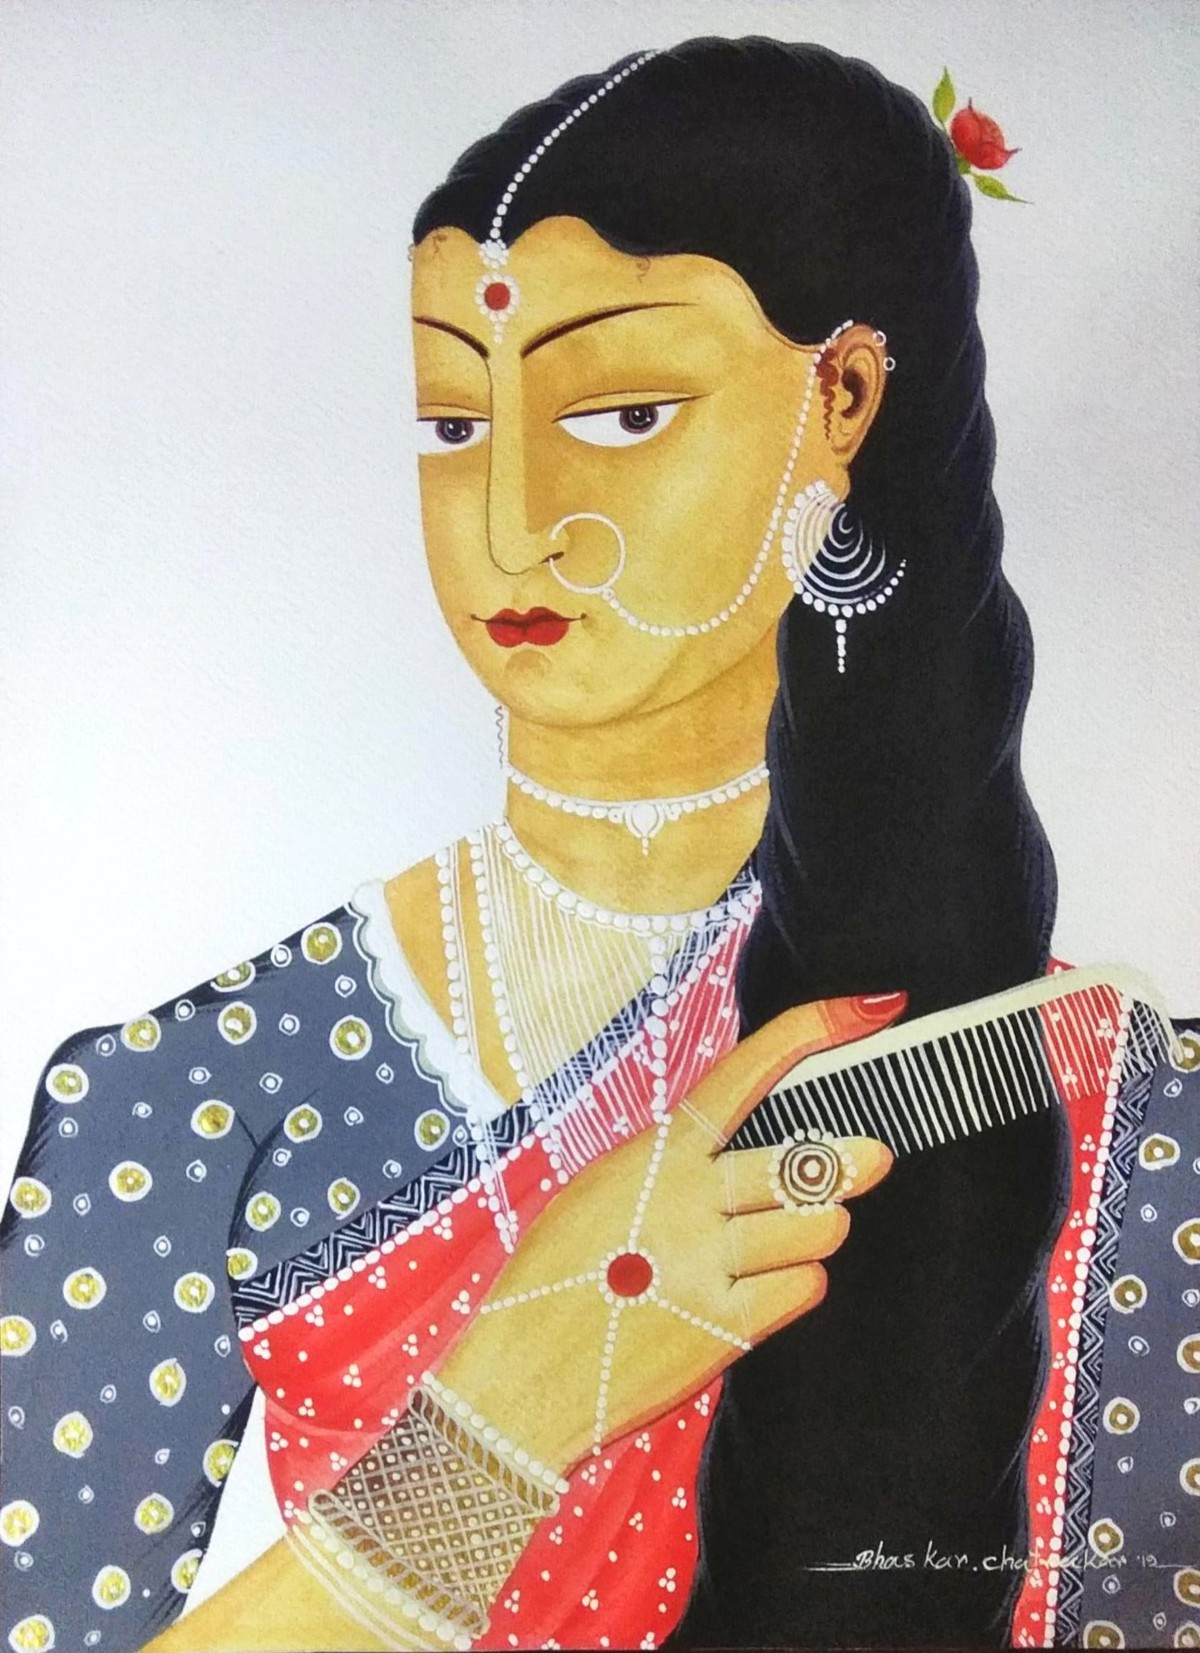 Bibi combing her hair, gazing at herself by Bhaskar Chitrakar, Folk Painting, Natural colours on paper, Gray color